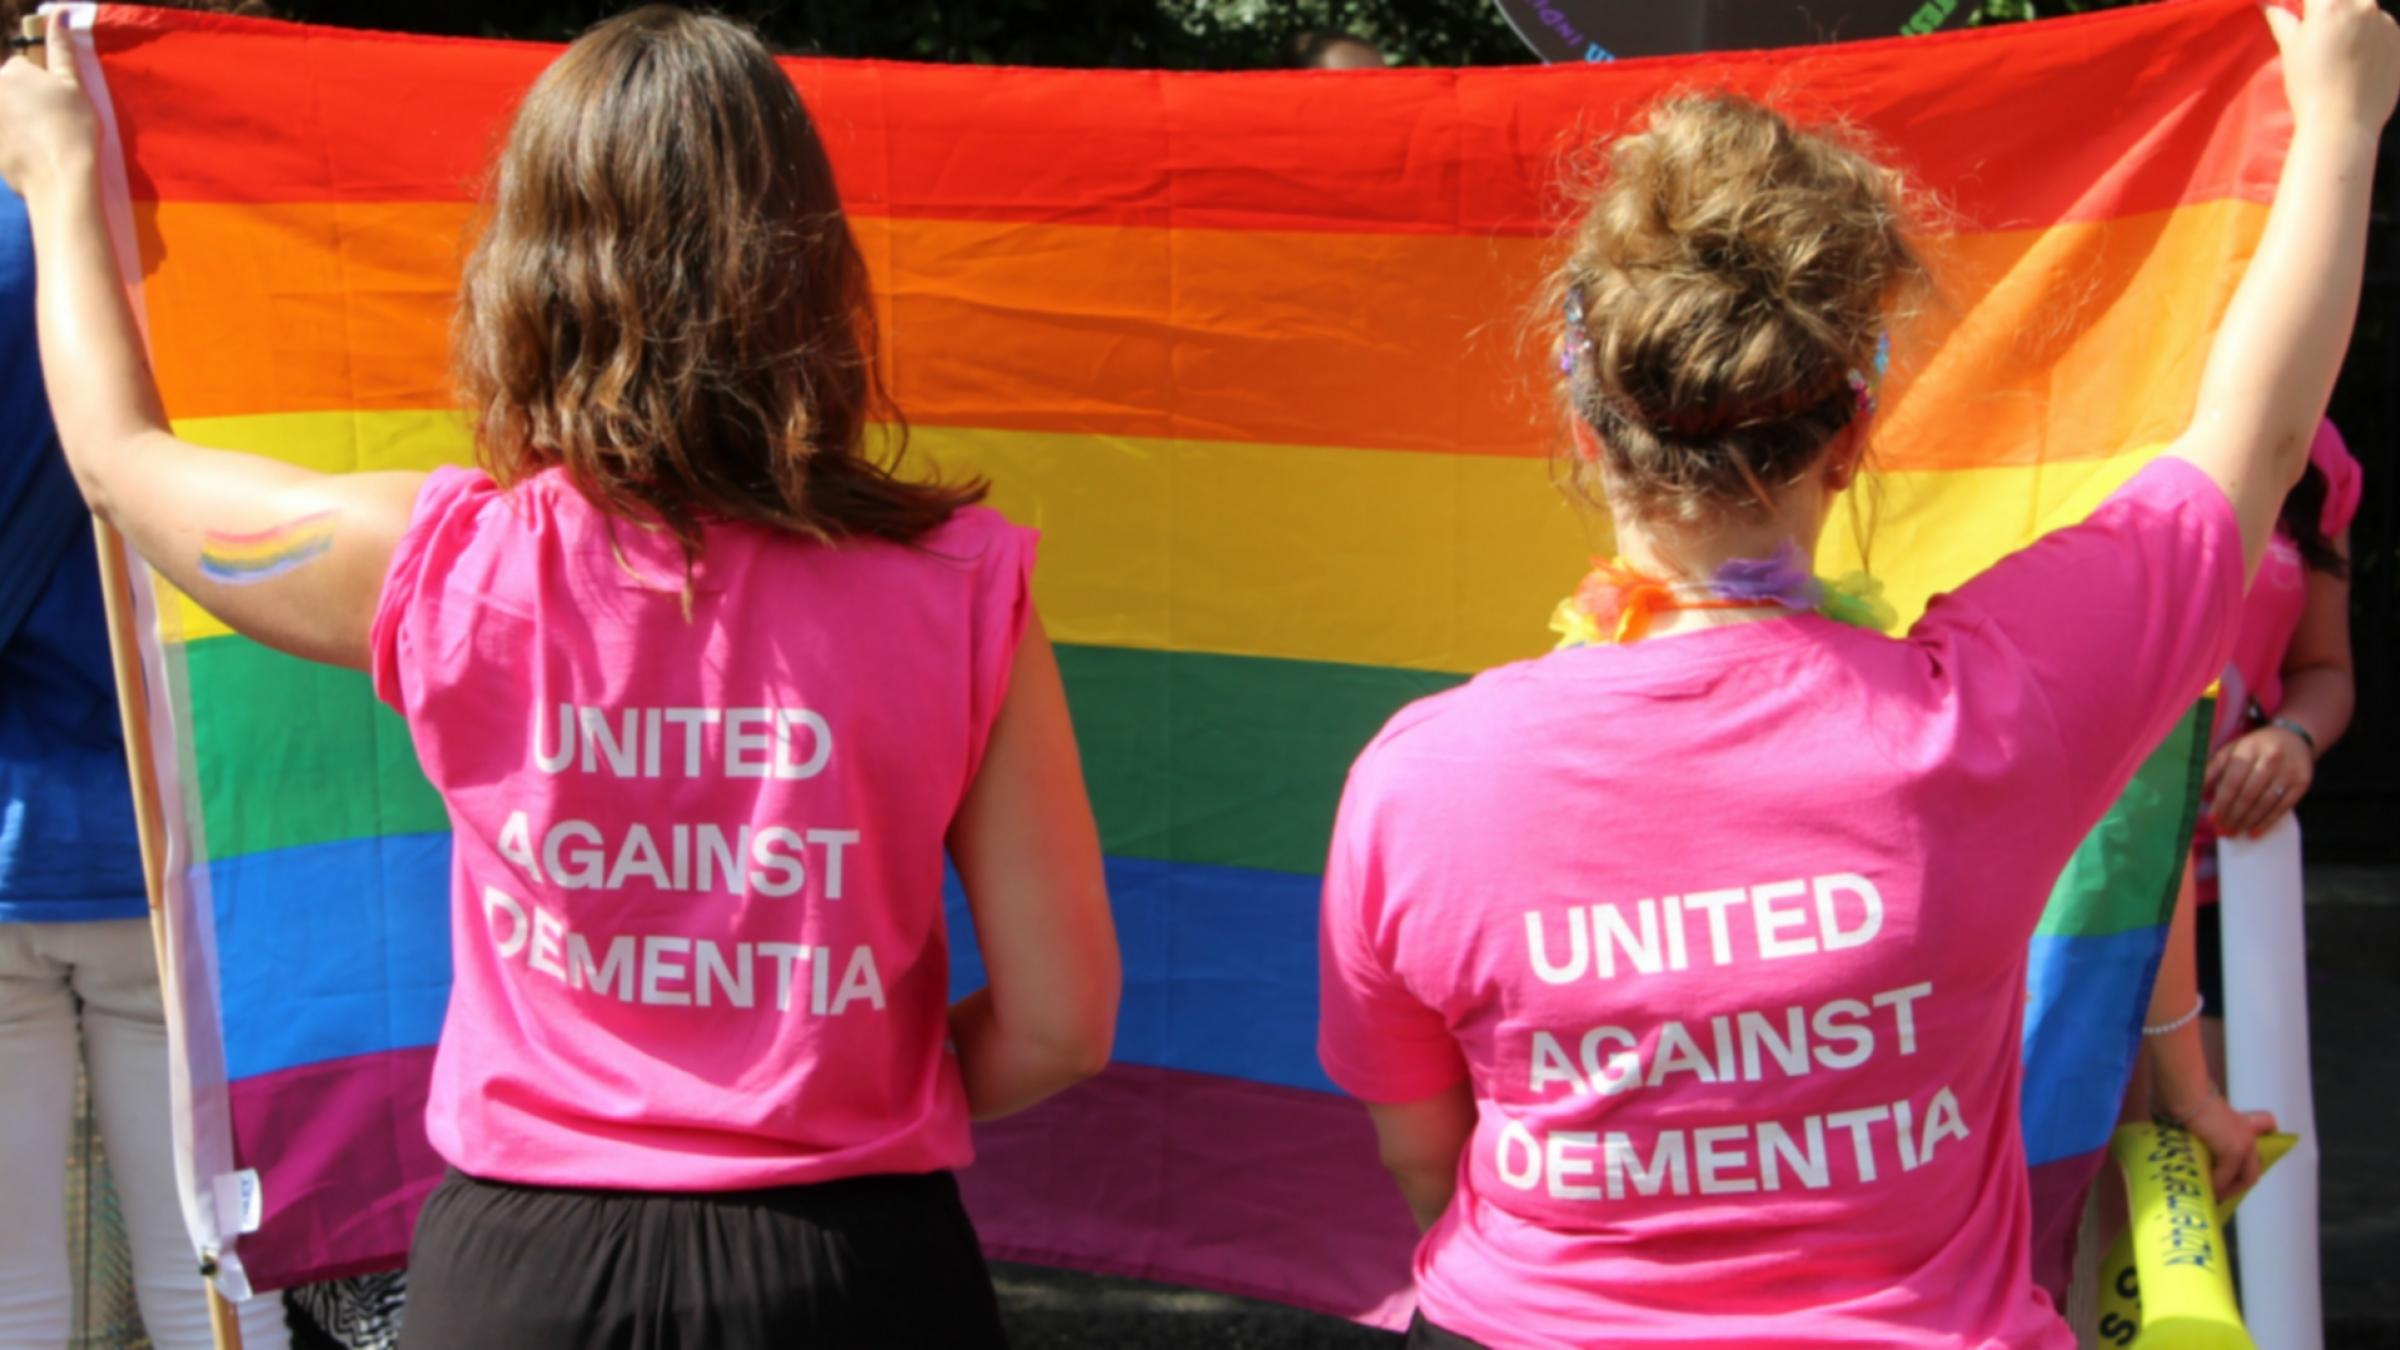 Two people holding LGBT flag wearing United Against Dementia T-shirts